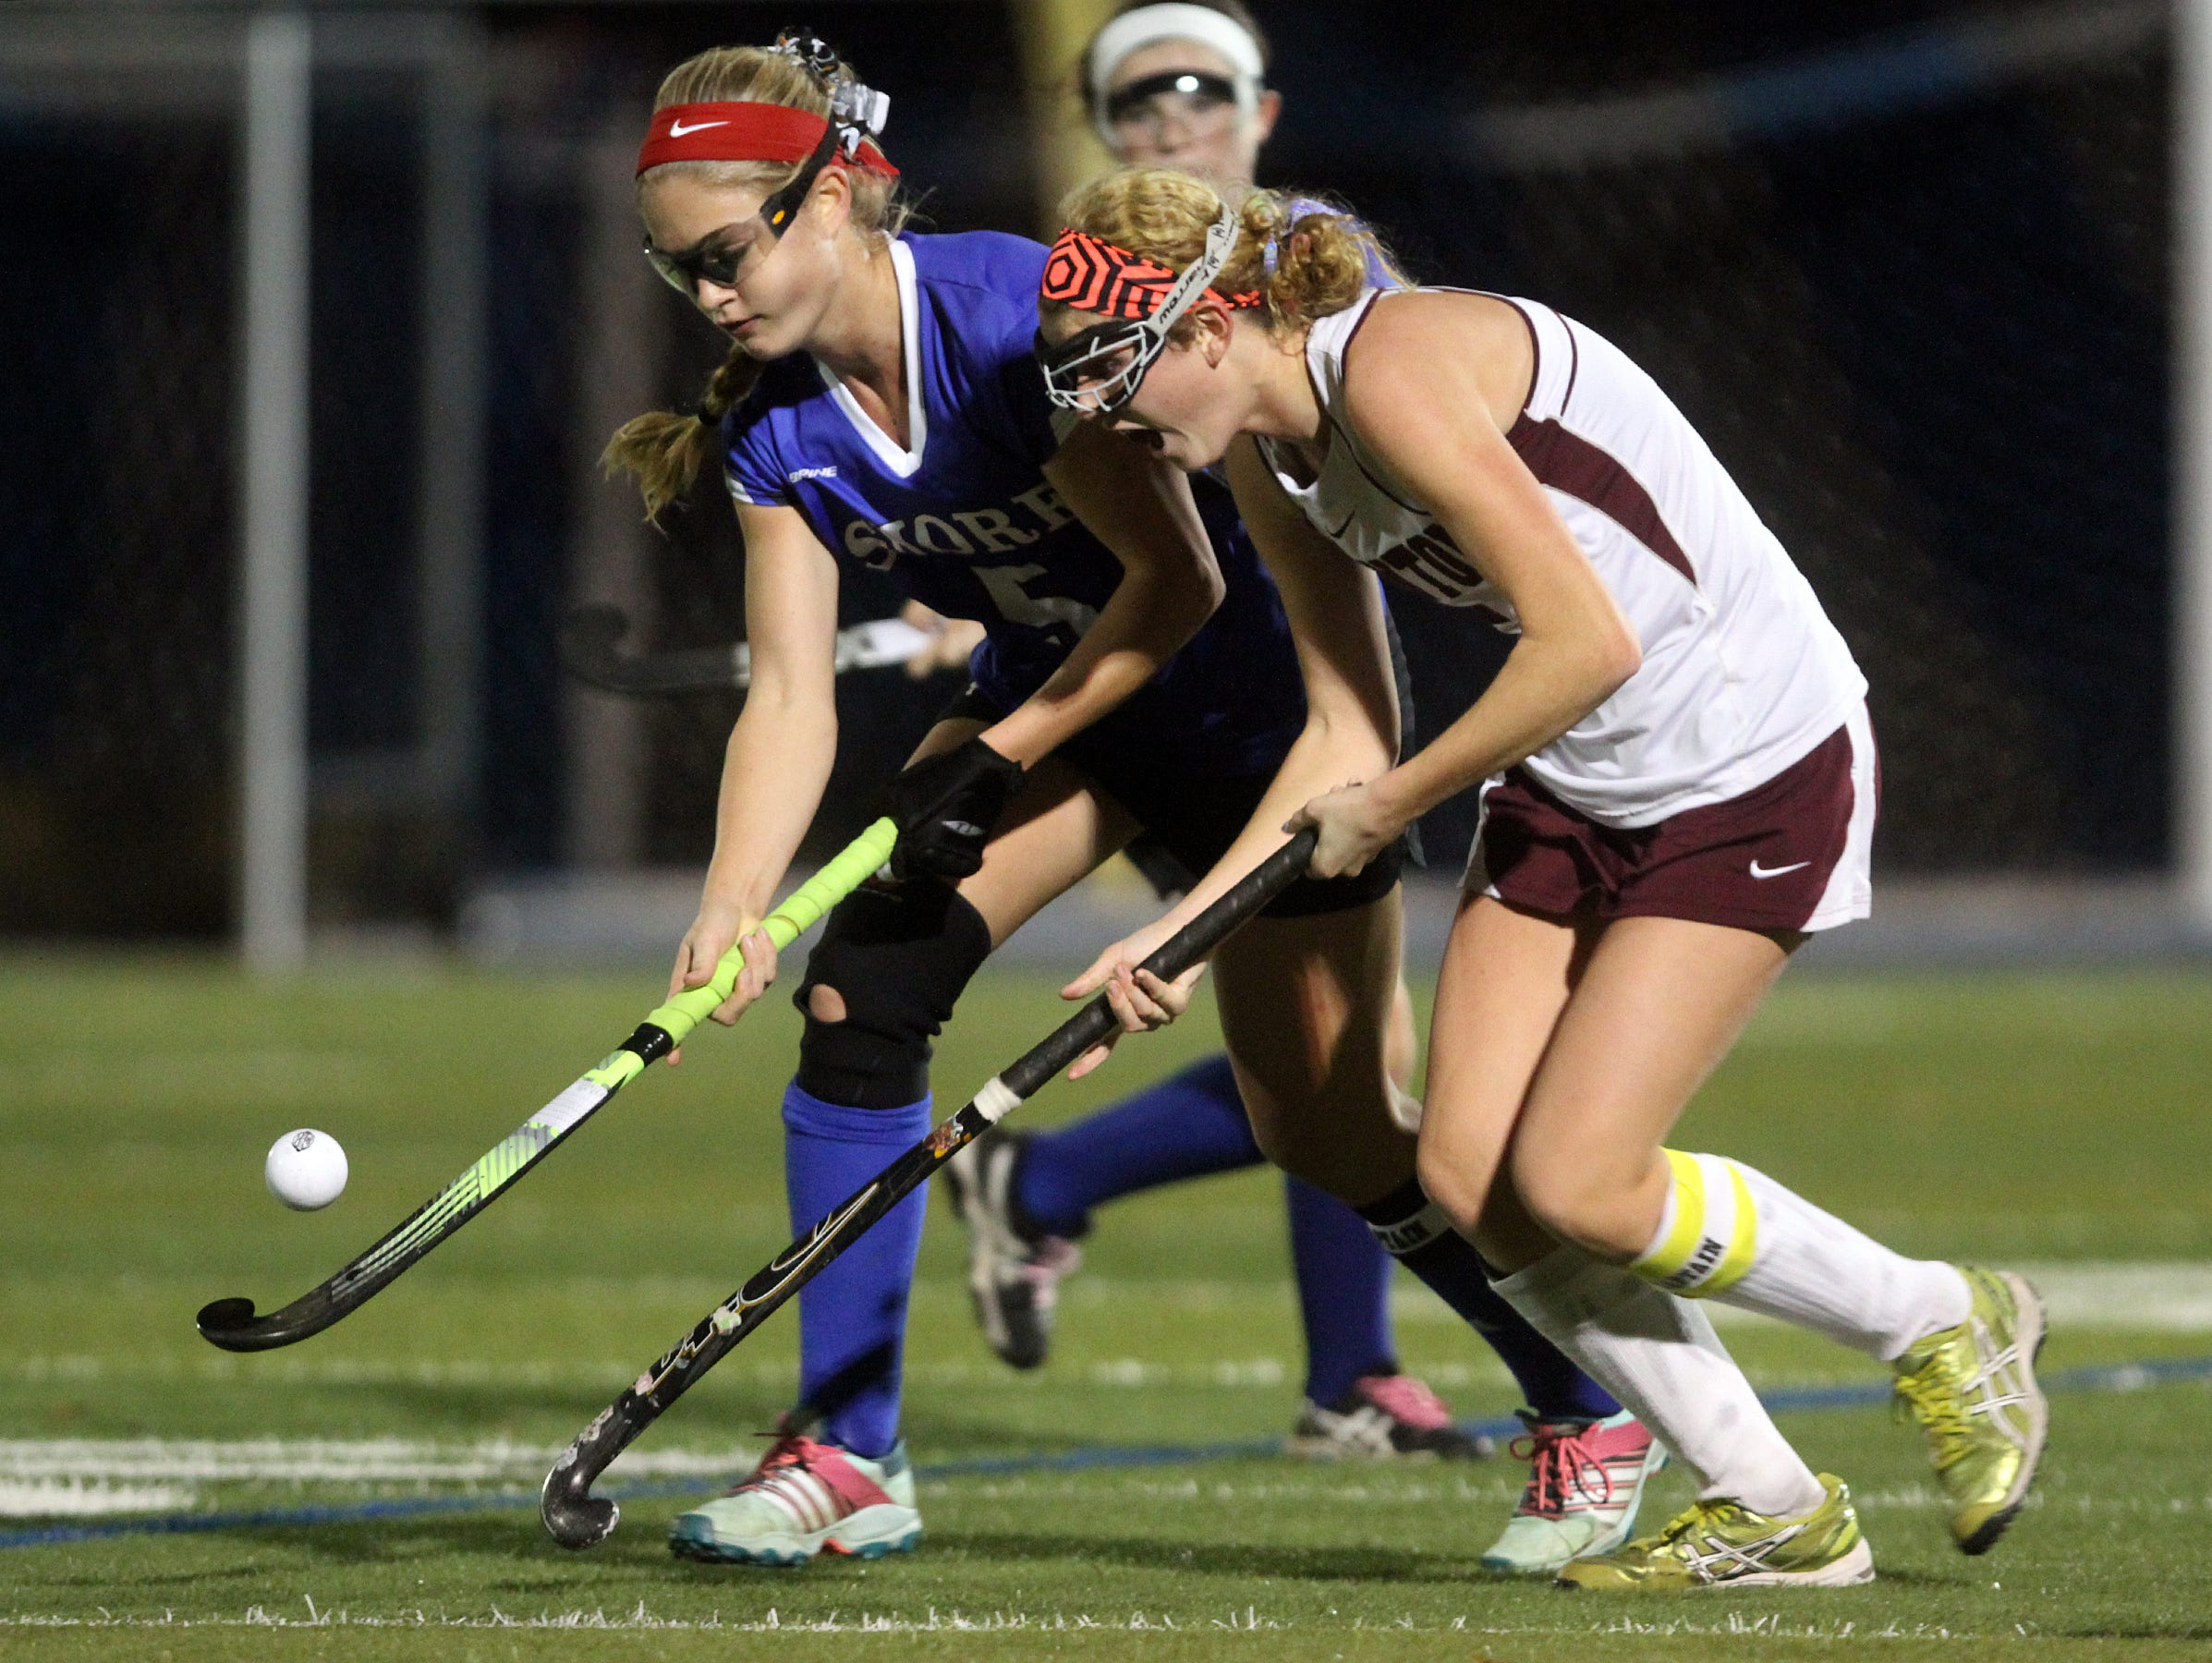 Shore Regional's Jessica Welch, left, battles for possession with Newton's Emily Weiss during the first half, Wednesday, November 11, 2015, at A.L. Johnson in Clark.